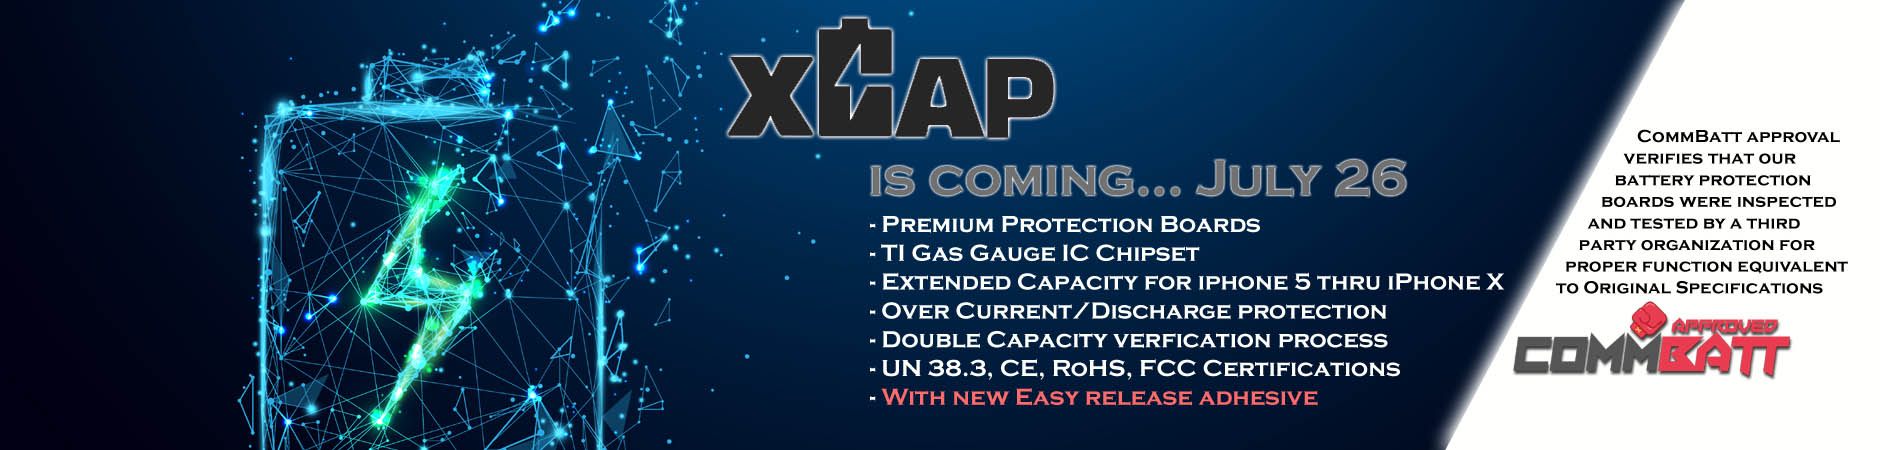 XCAP Batteries are coming. July 26th!